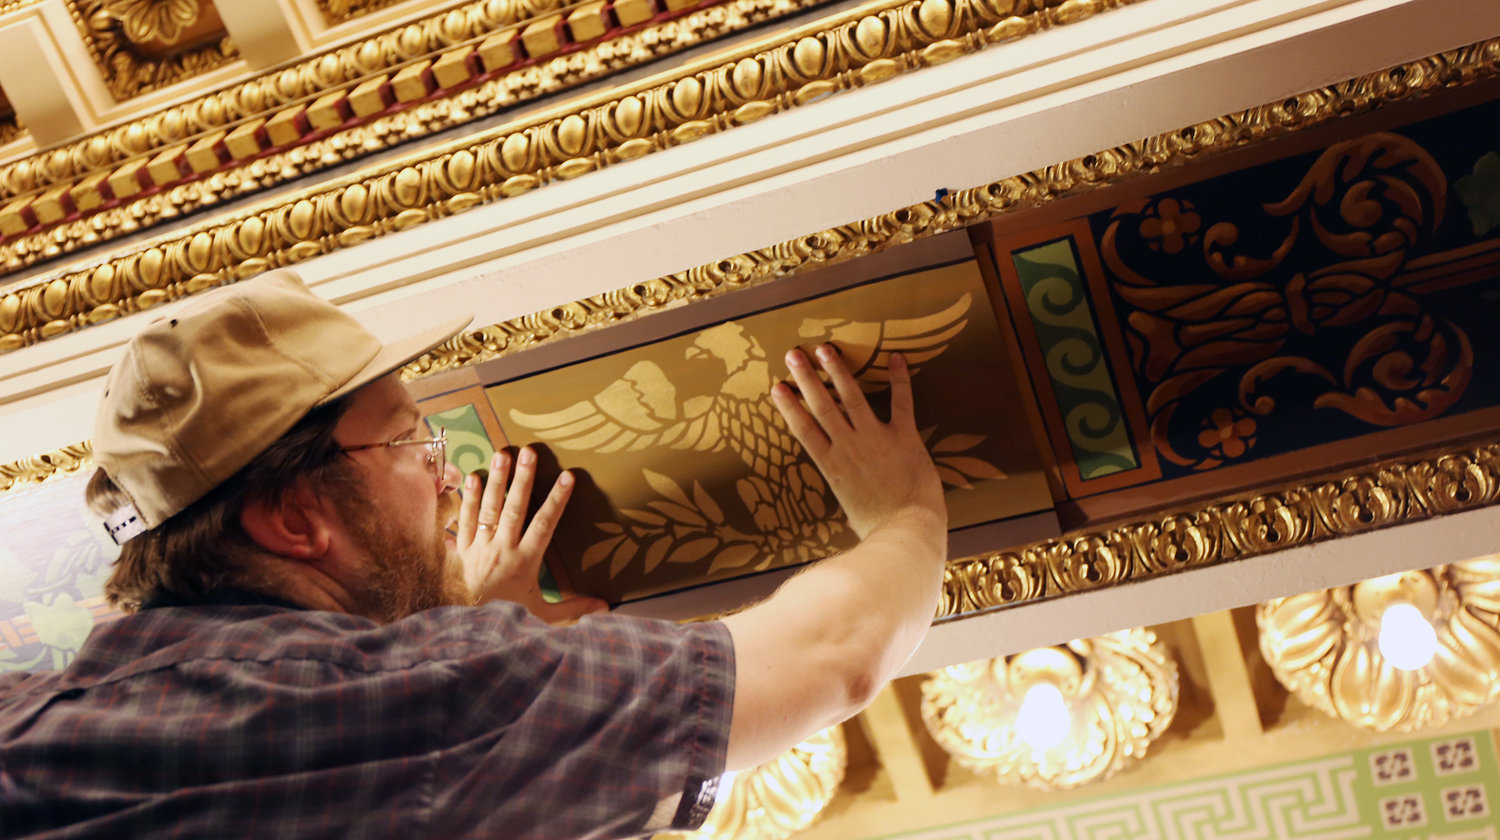 materials-conservation-philadelphia-city-council-chambers-ceiling-1.jpg